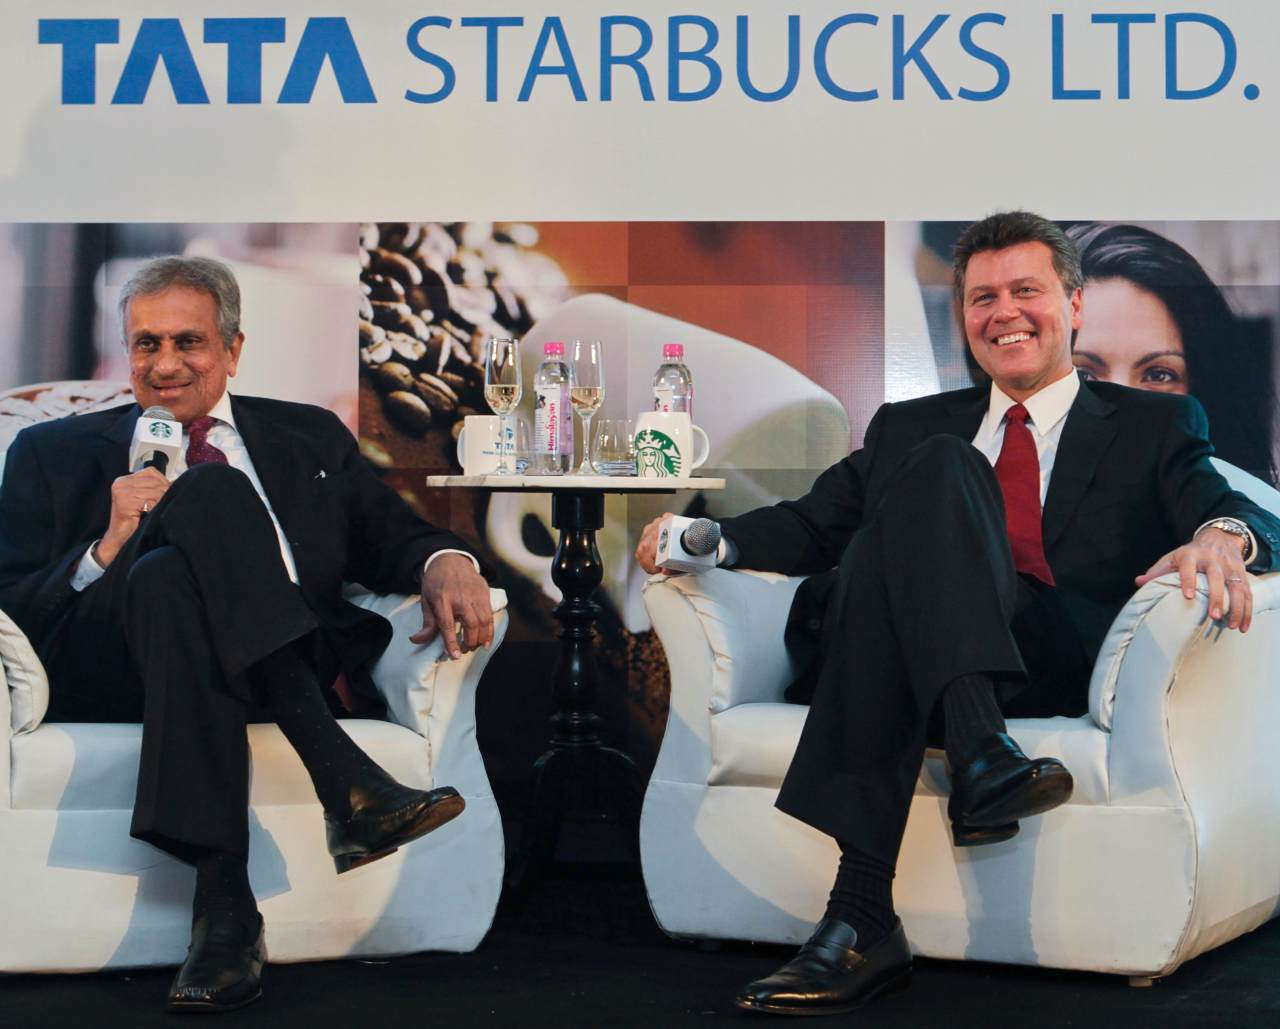 Tata Global Beverages | Founded in 1964, the company suffered a tumultuous gestation period as the tea industry in India came under pressure due to rising input and labour costs, dwindling margins, as well as high taxes. The industry not only faced threat from China but also from other countries. With brands such as Kannan Devan, Agni, Gemini and Chakra Gold under its ambit, Tata Global Beverages has become the world's second-largest manufacturer and distributor of tea and a major producer of coffee. In 2012, the company brought renowned coffeehouse chain Starbucks to India in a 50/50 joint venture. (Image: Reuters)